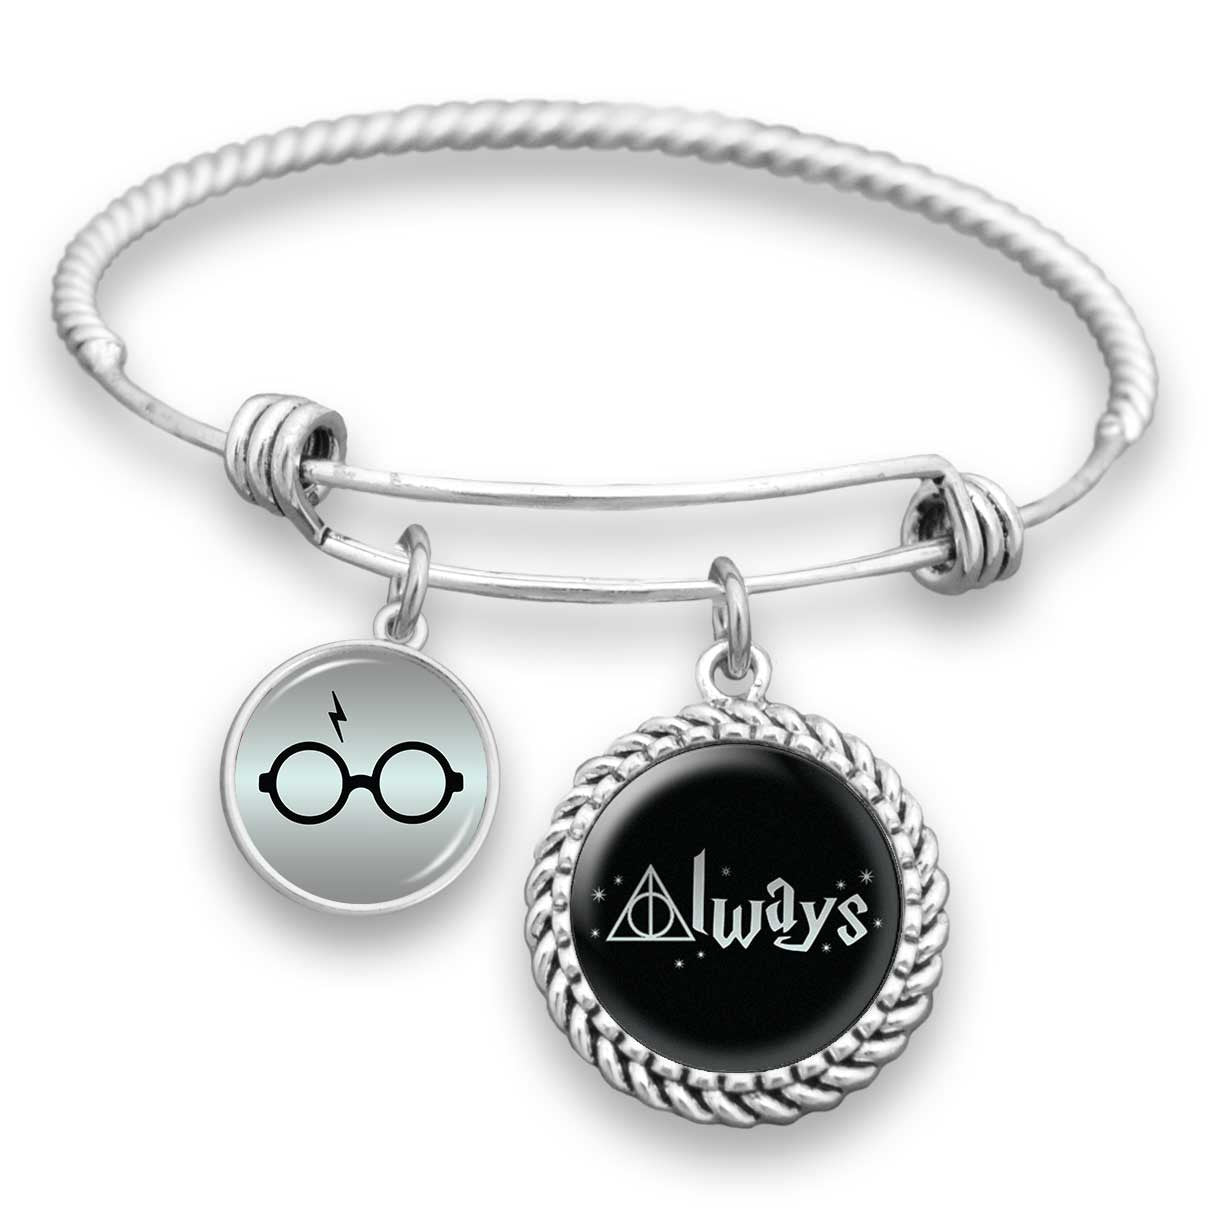 "Hallows ""Always"" Charm Bracelet"